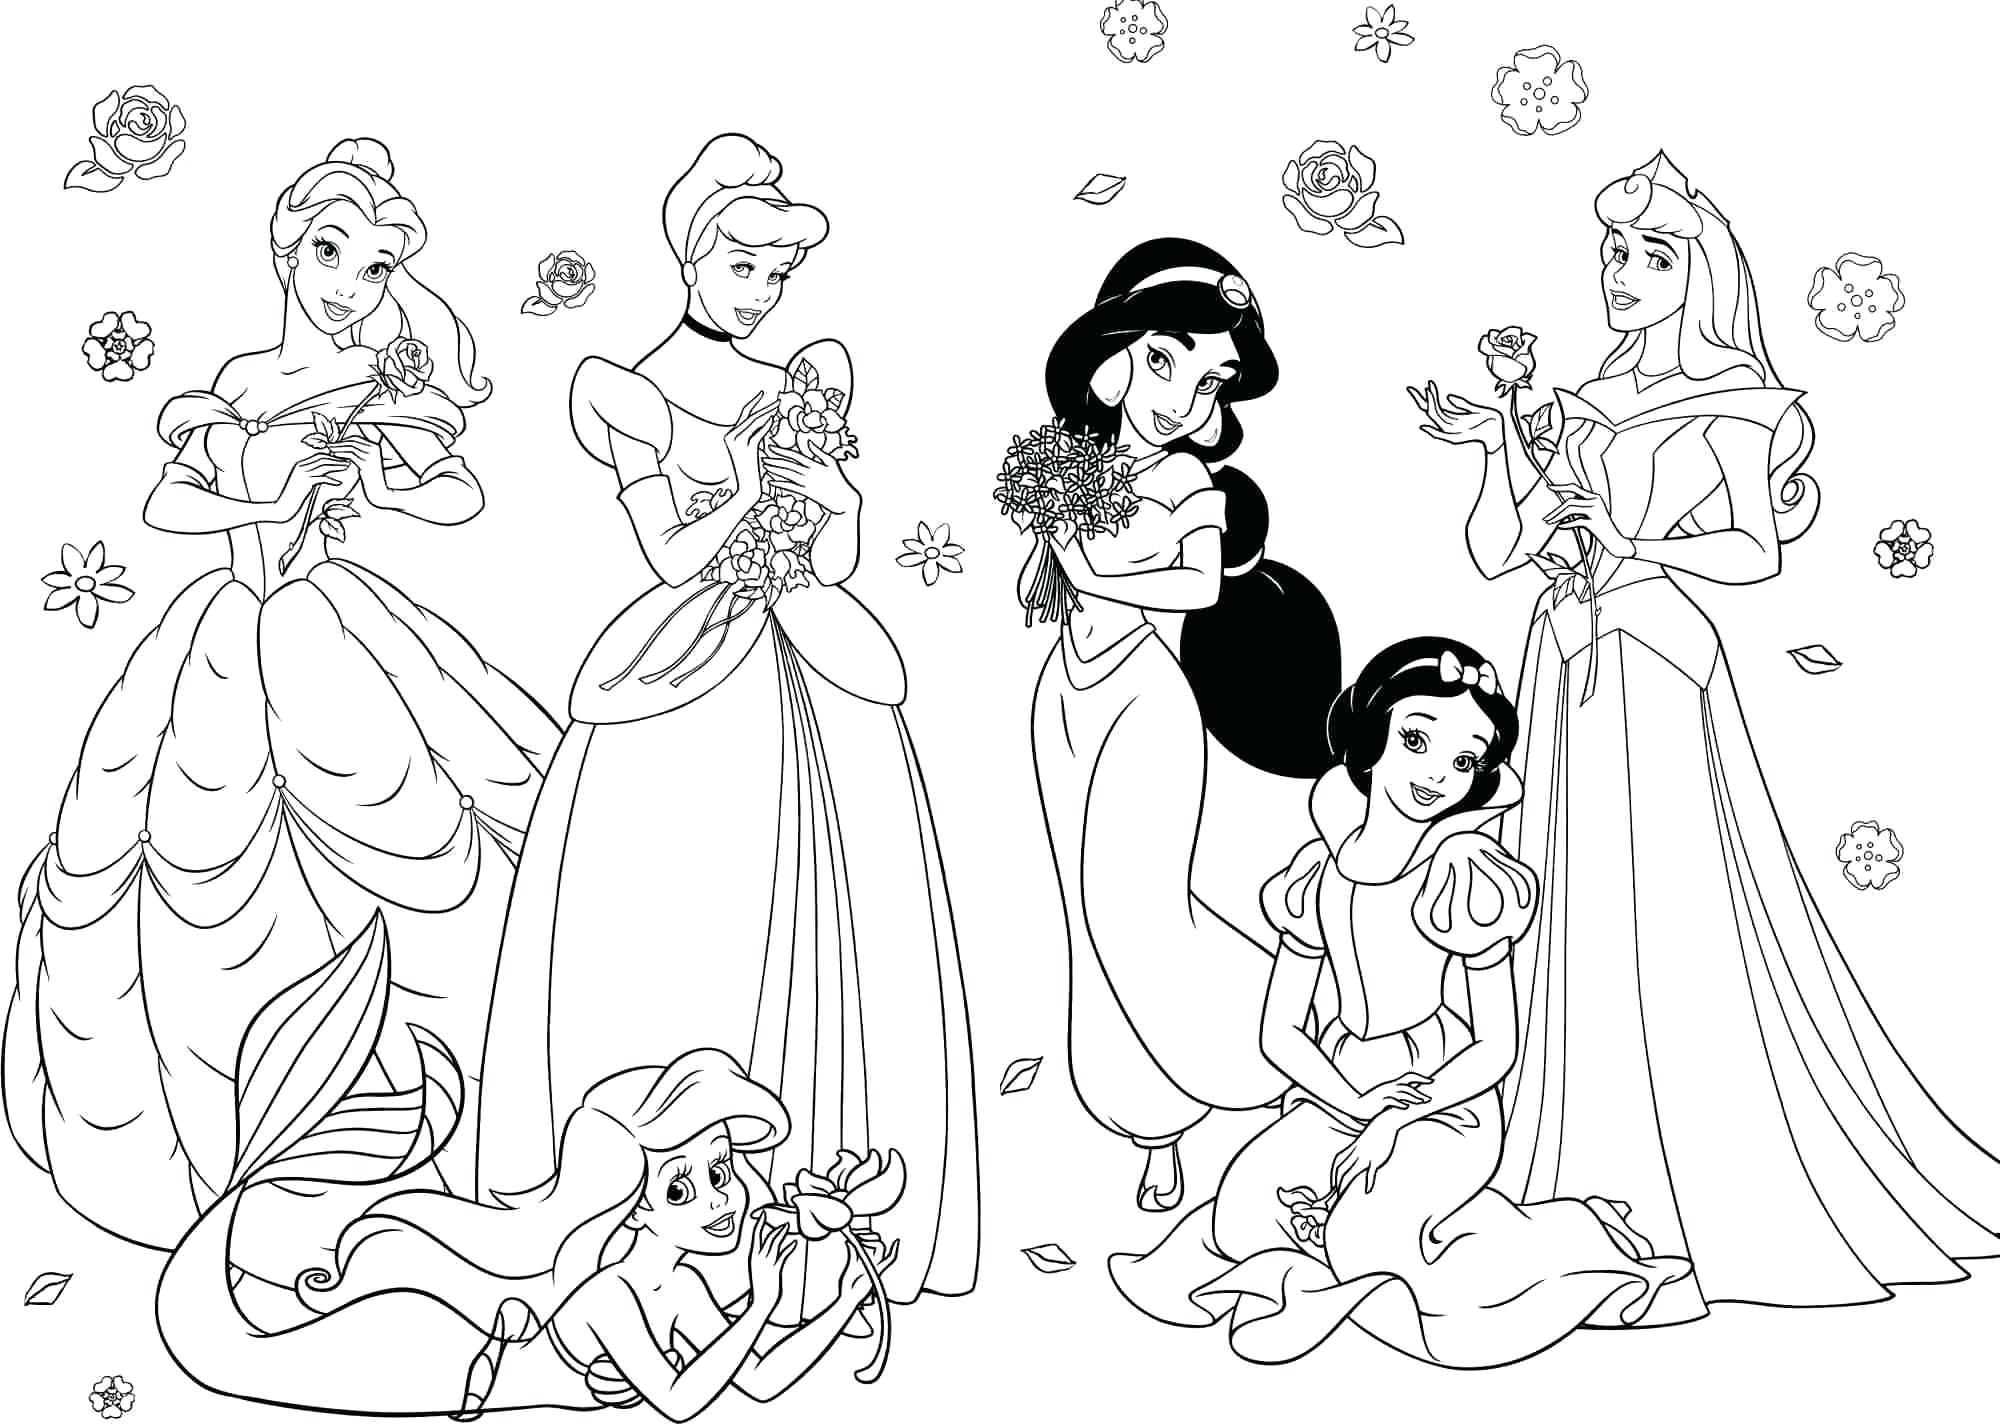 Disney Coloring Princesses Coloring Pages Allow Kids To Accompany Their Favori Disney Princess Coloring Pages Disney Princess Colors Princess Coloring Pages